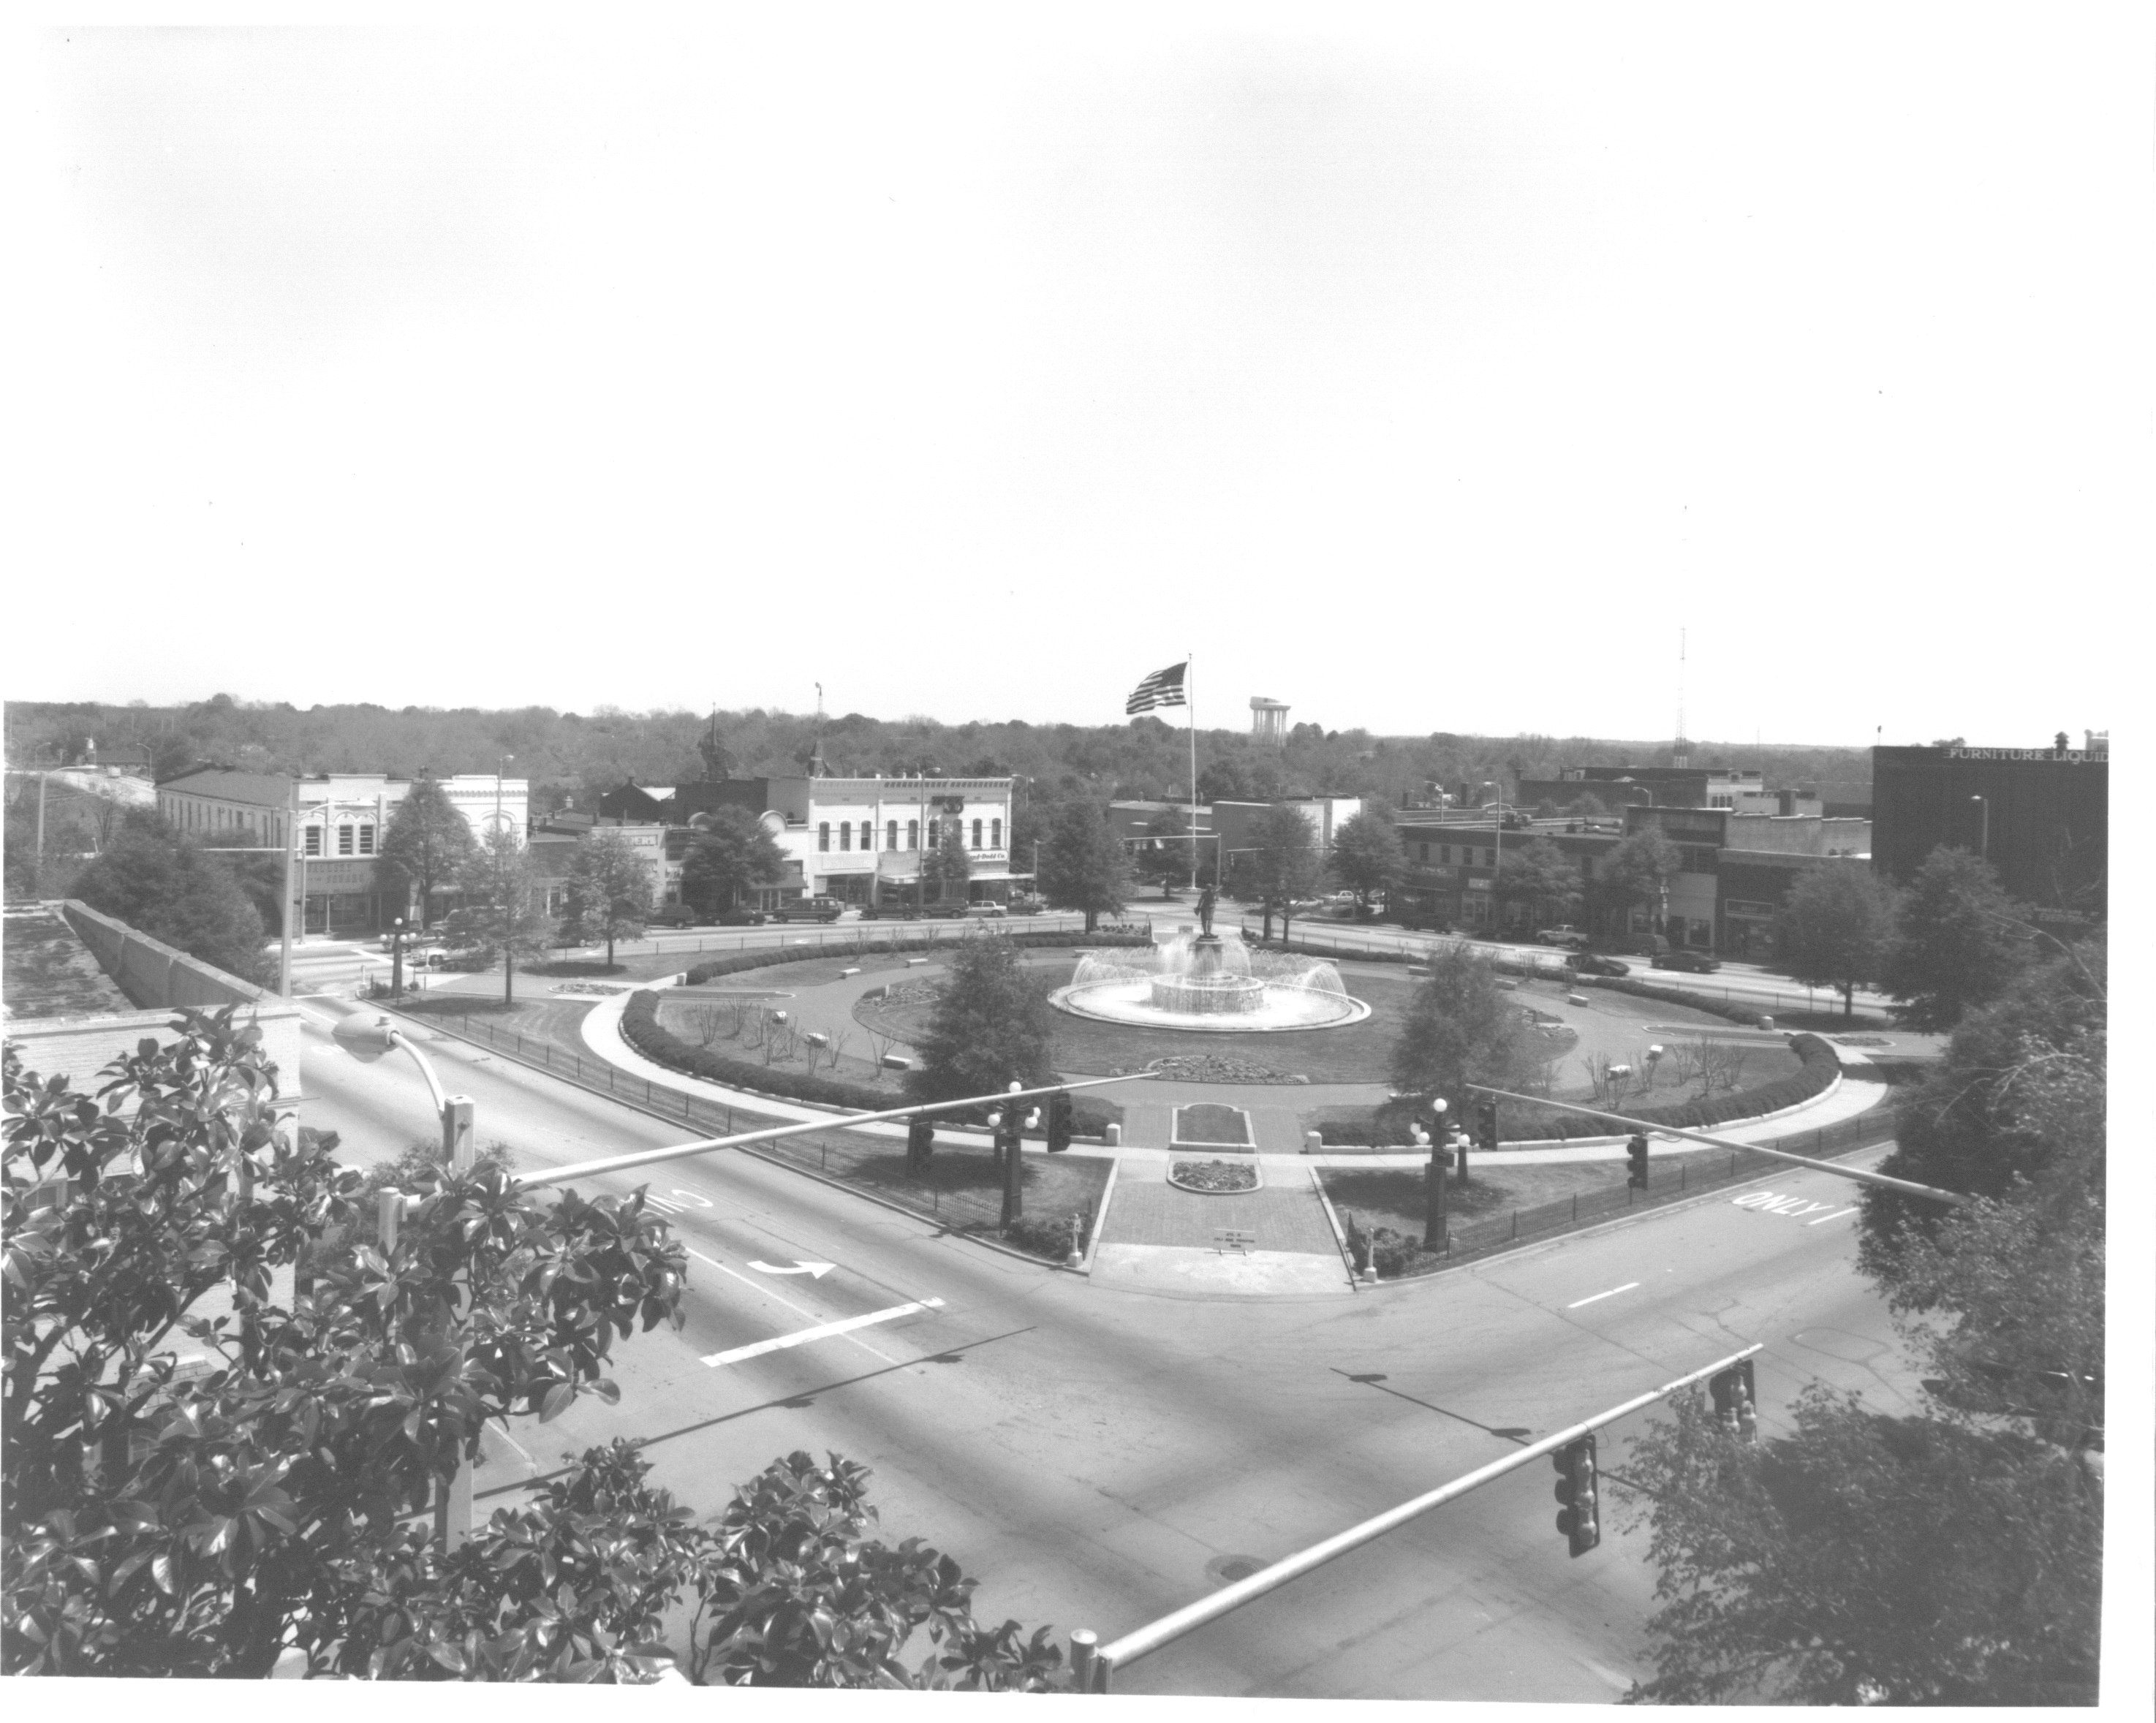 LaGrange, GA - Troup County Courthouse circa 1930s: Provided by Troup County Historical Society Archives & Legacy Museum